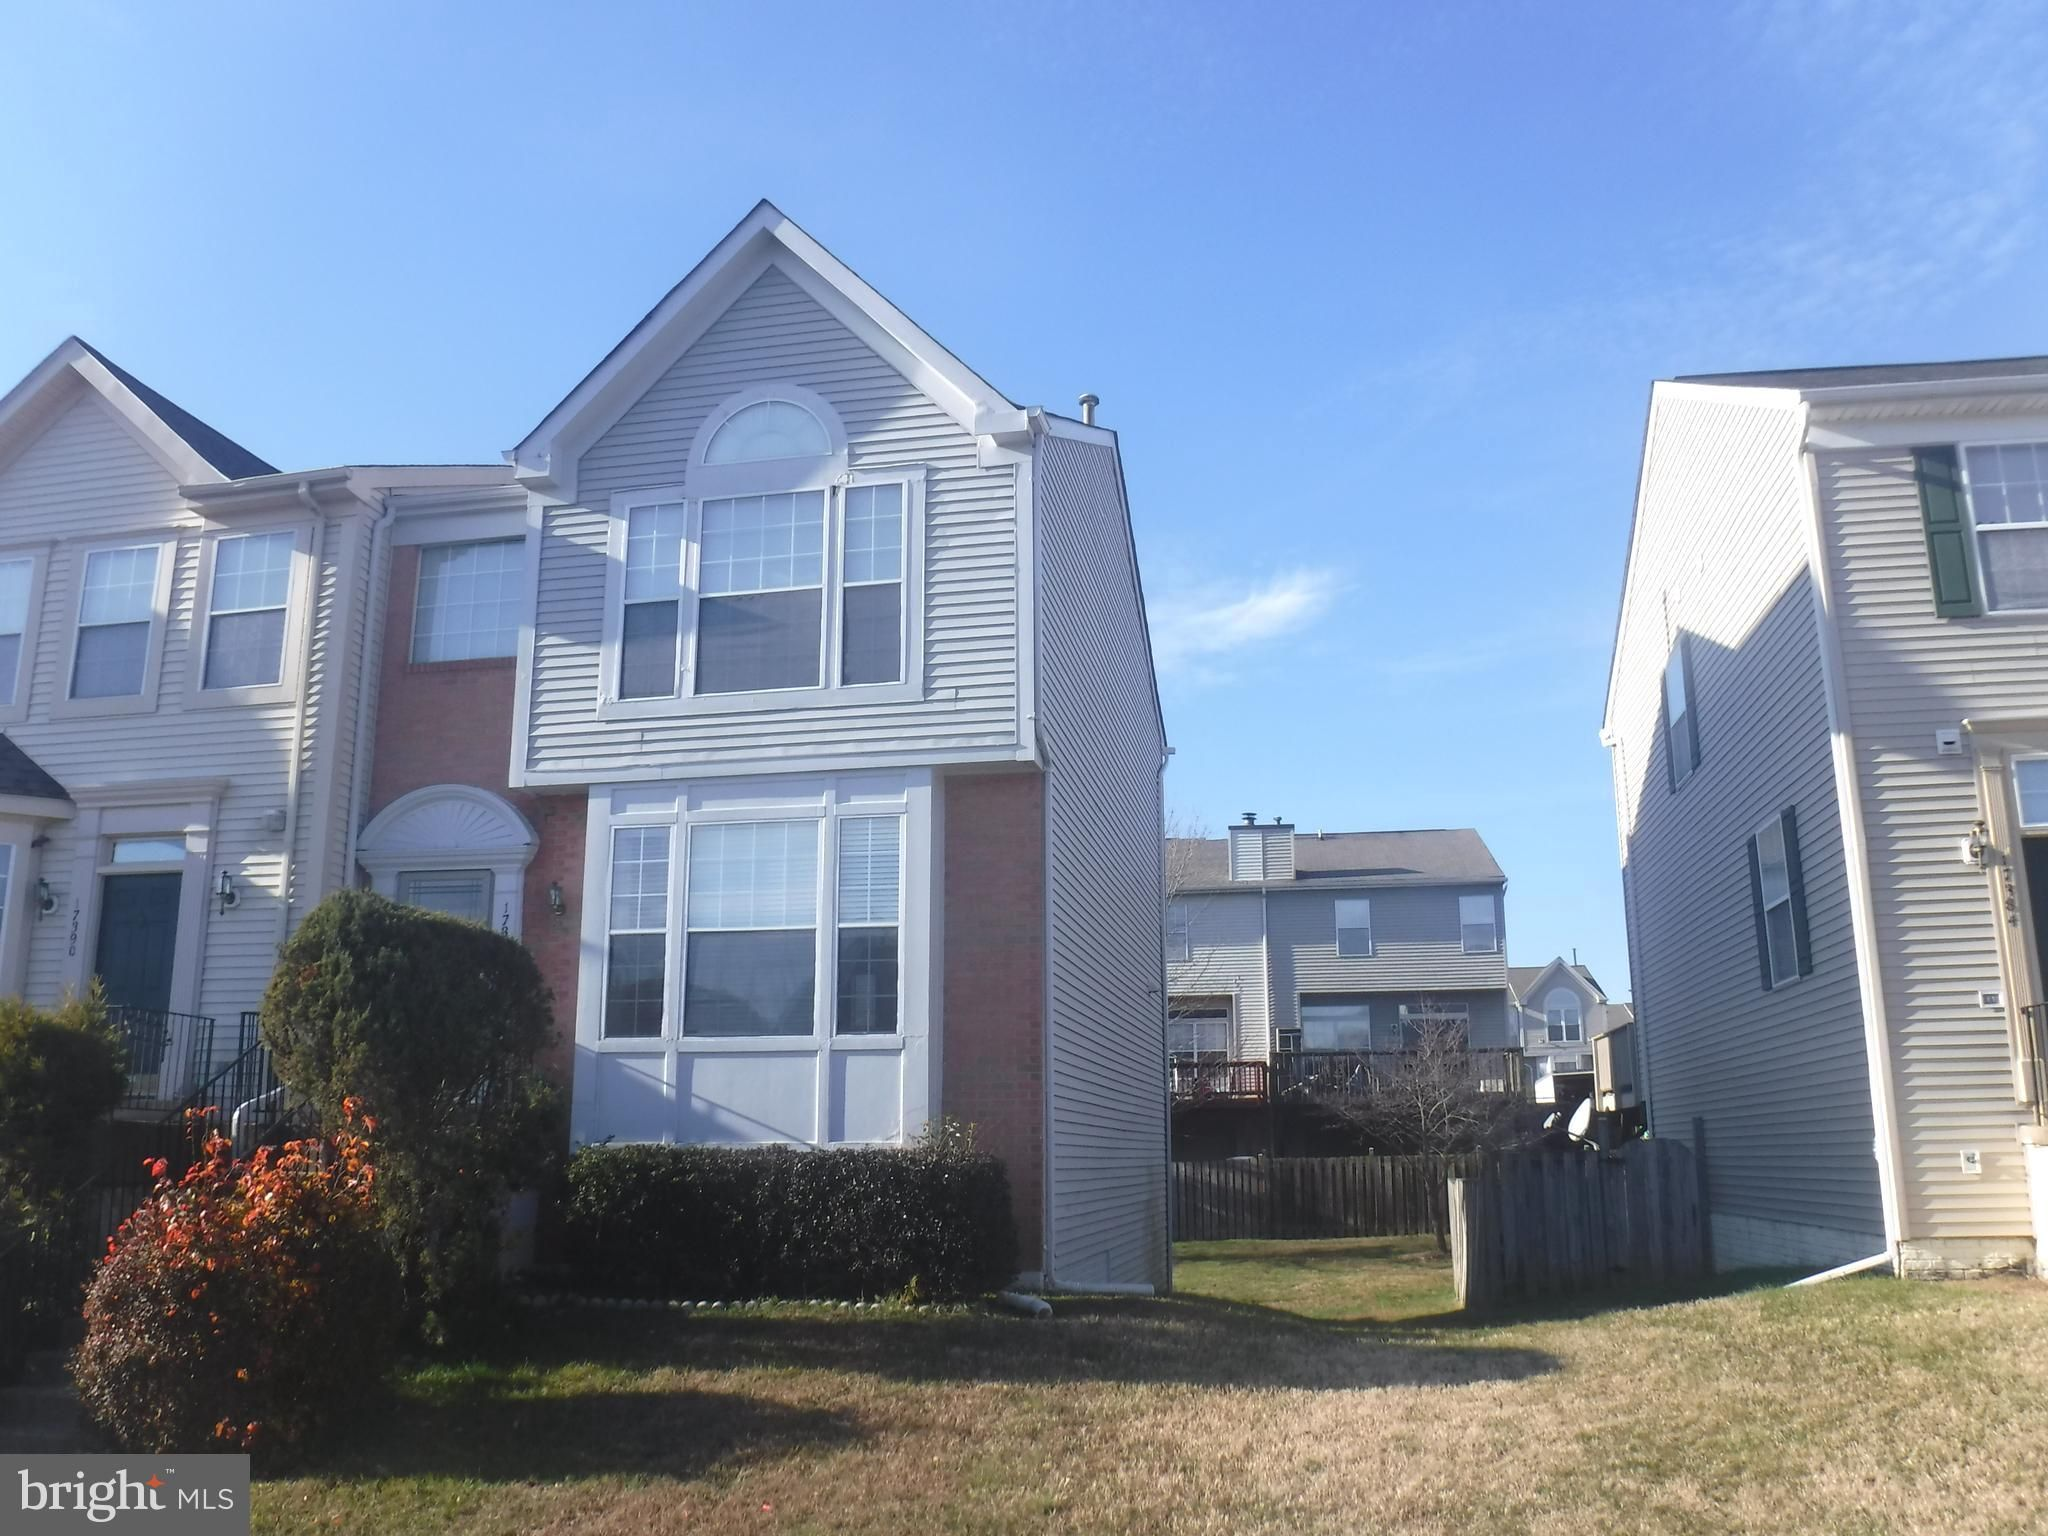 Dumfries Real Estate Dumfries Va Homes For Sale Www Reshawnaleaven Com Real Estate Dumfries First Time Home Buyers